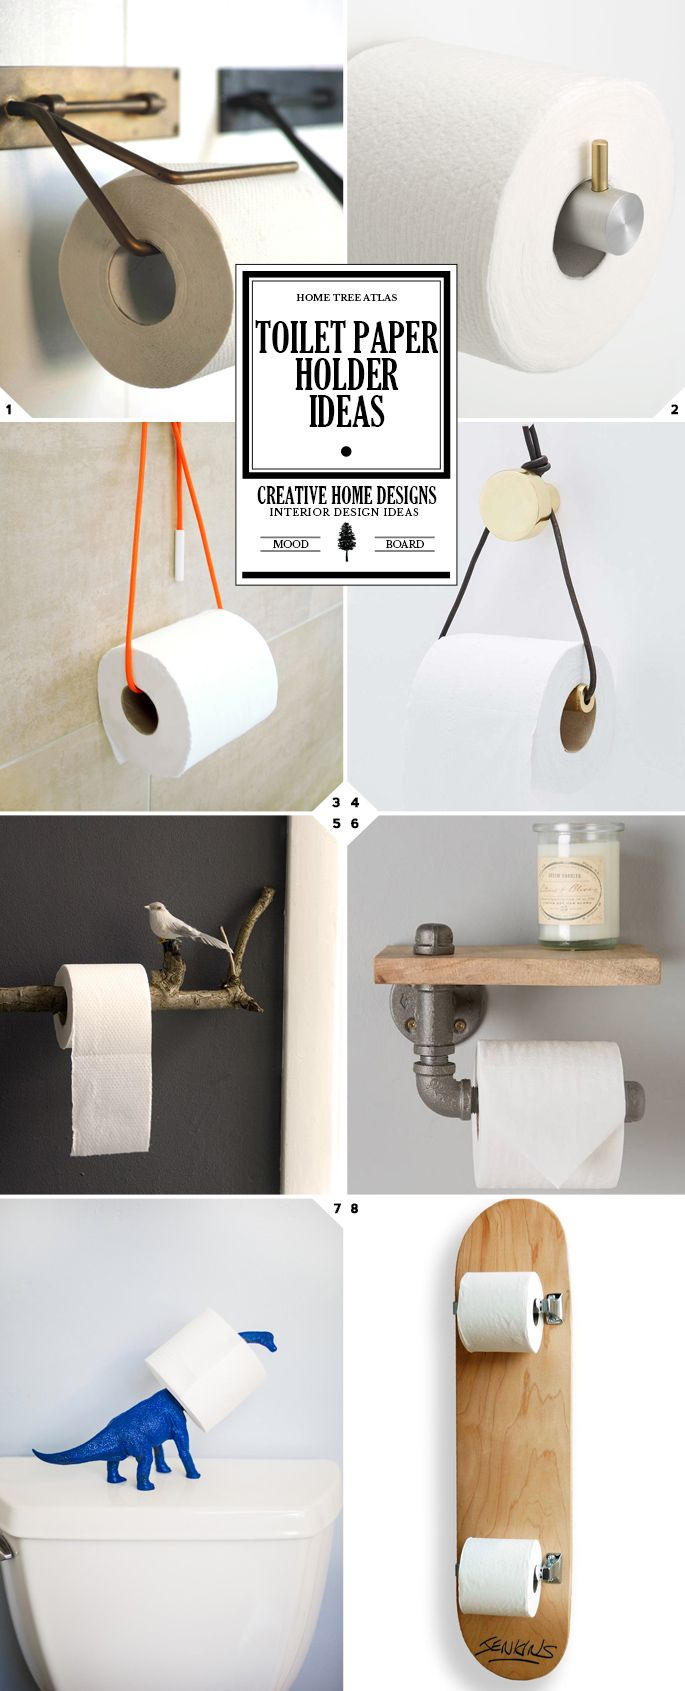 Here Is A Gallery Of Different Toilet Paper Holder Ideas You Have